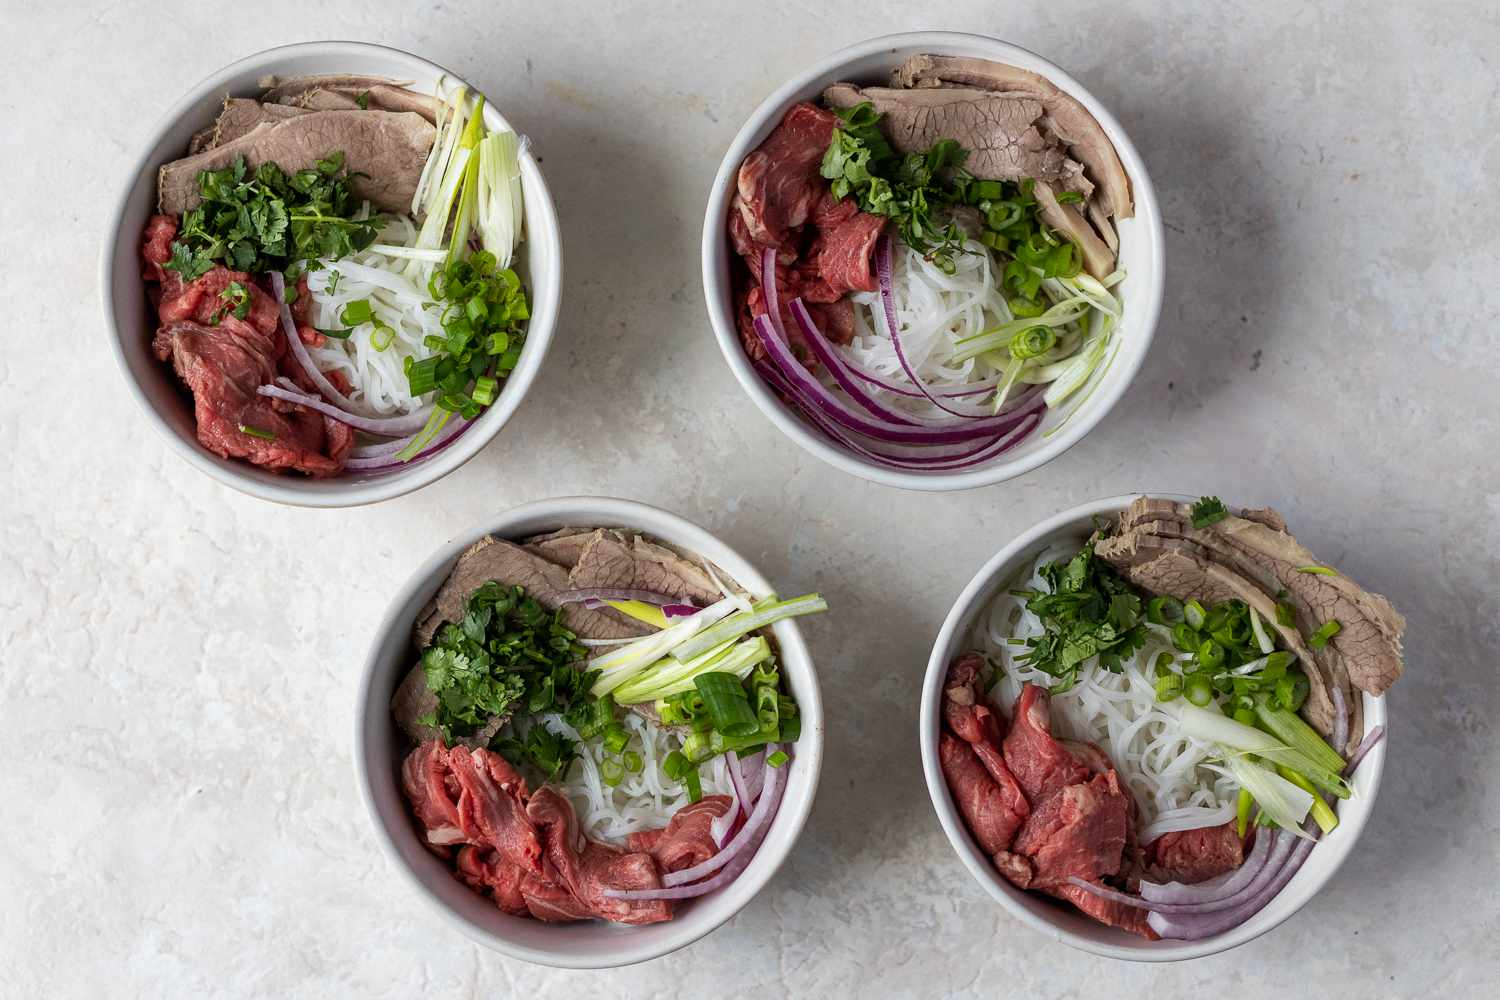 Divide the prepared noodles among the four bowls, top with cooked brisket, raw filet mignon, red onion, green onion, and cilantro